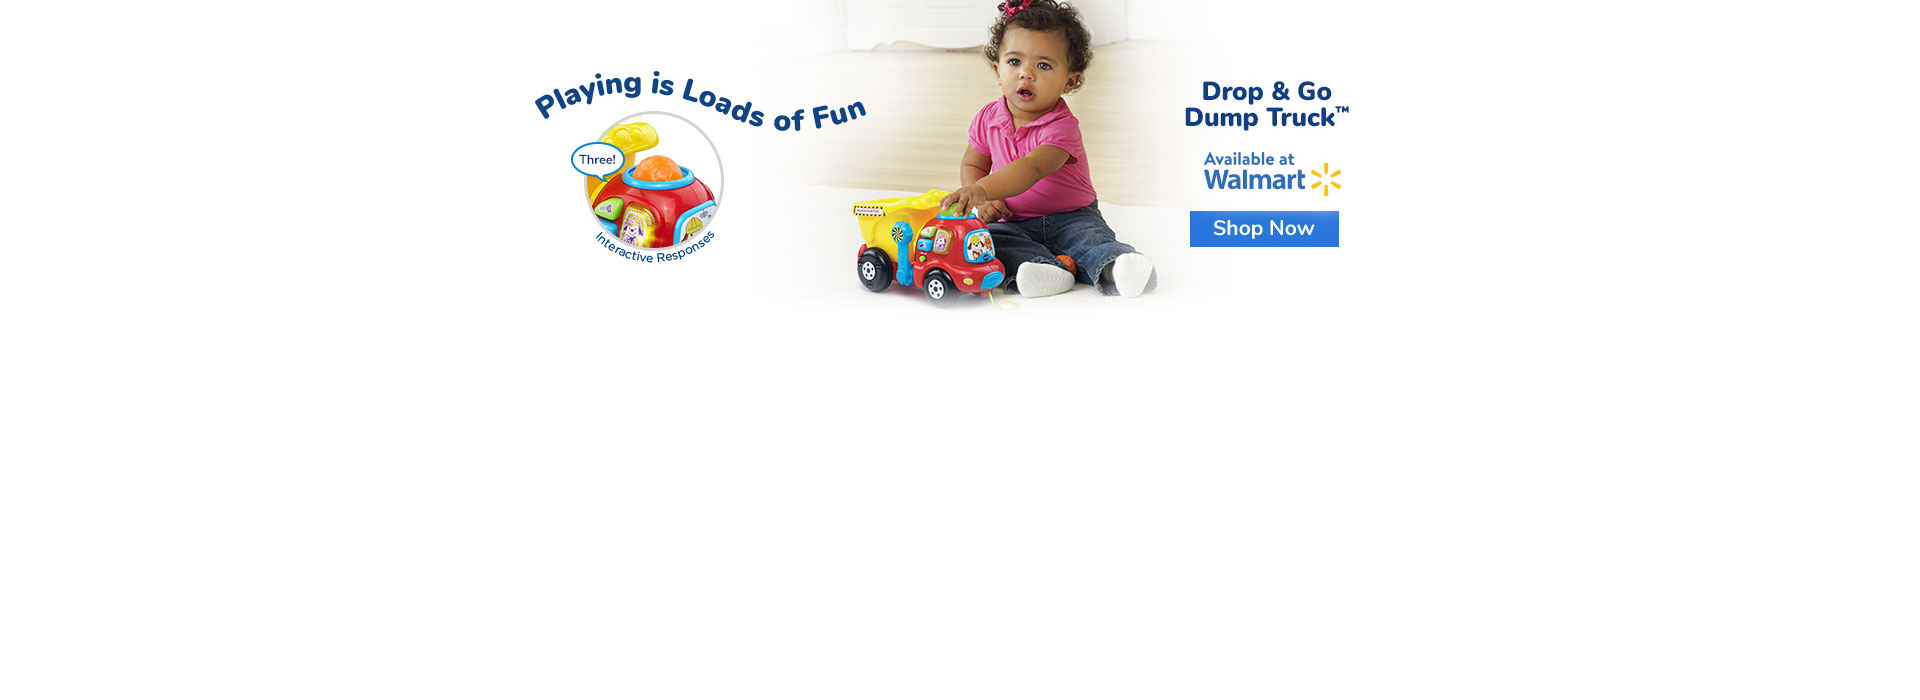 Drop and Go Dump Truck - Buy Now at Walmart